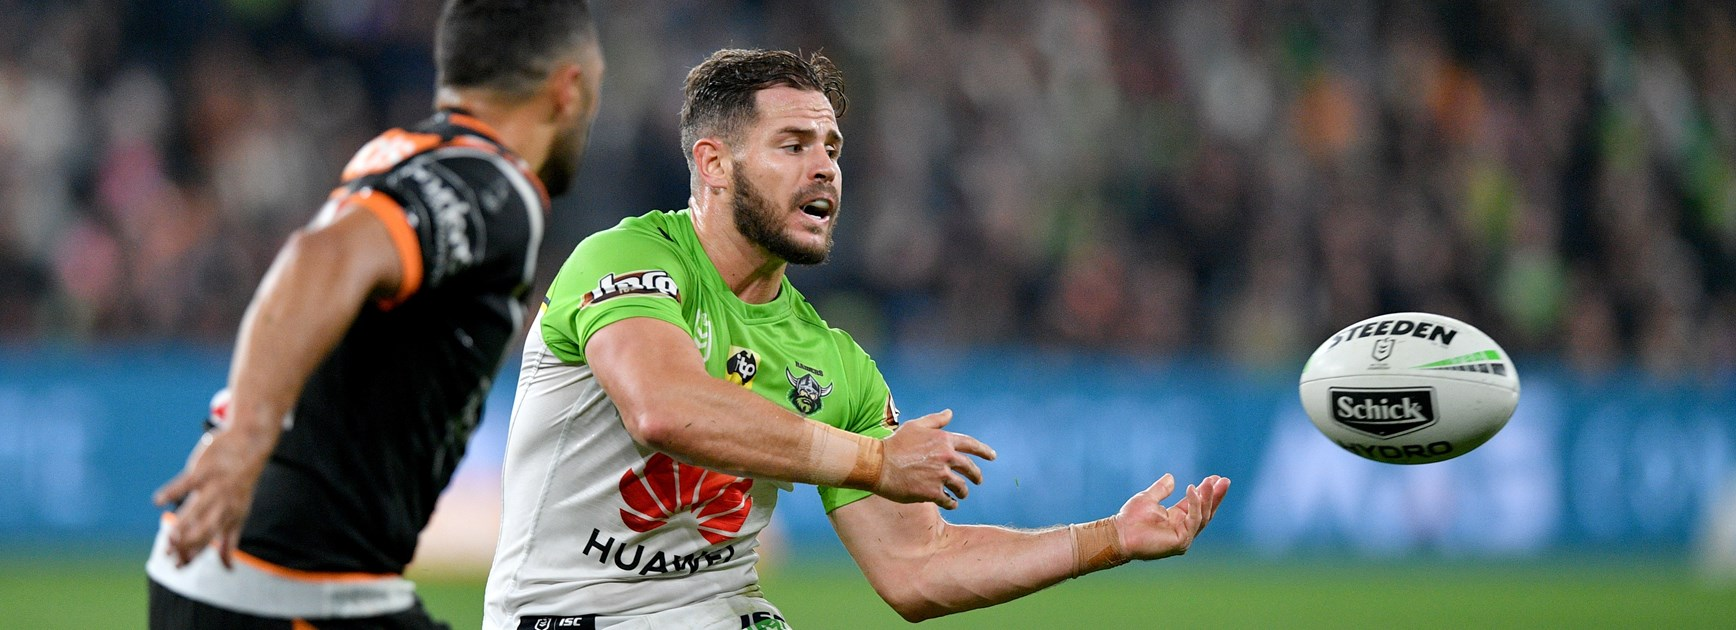 Sticky situation: Recalled Sezer keen to keep tight grip on jersey